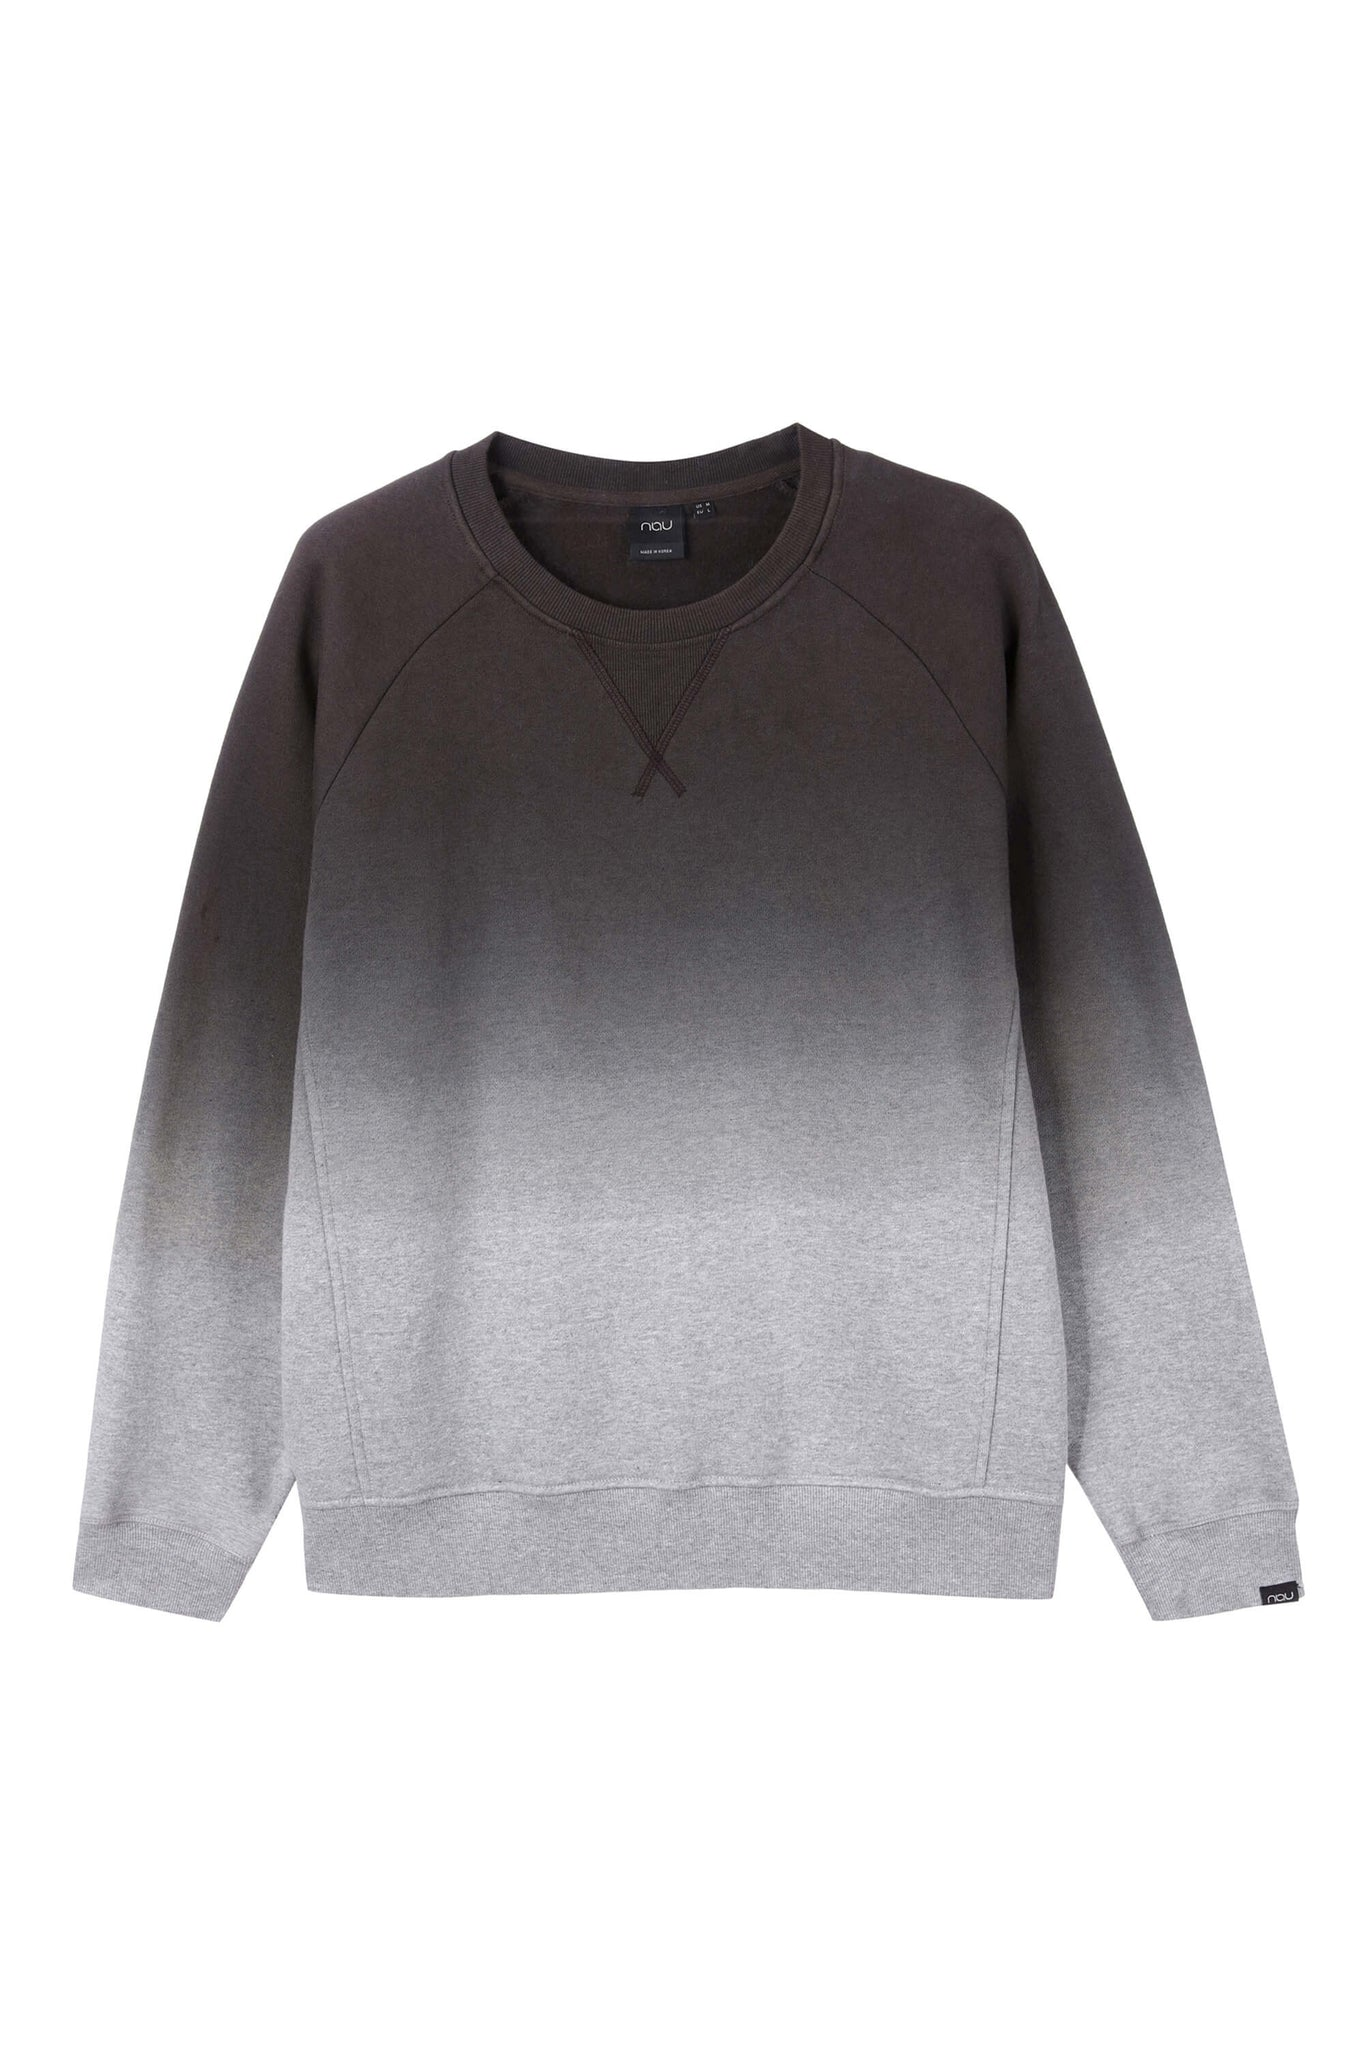 men's organic cotton ombre crew neck sweatshirt - dark grey